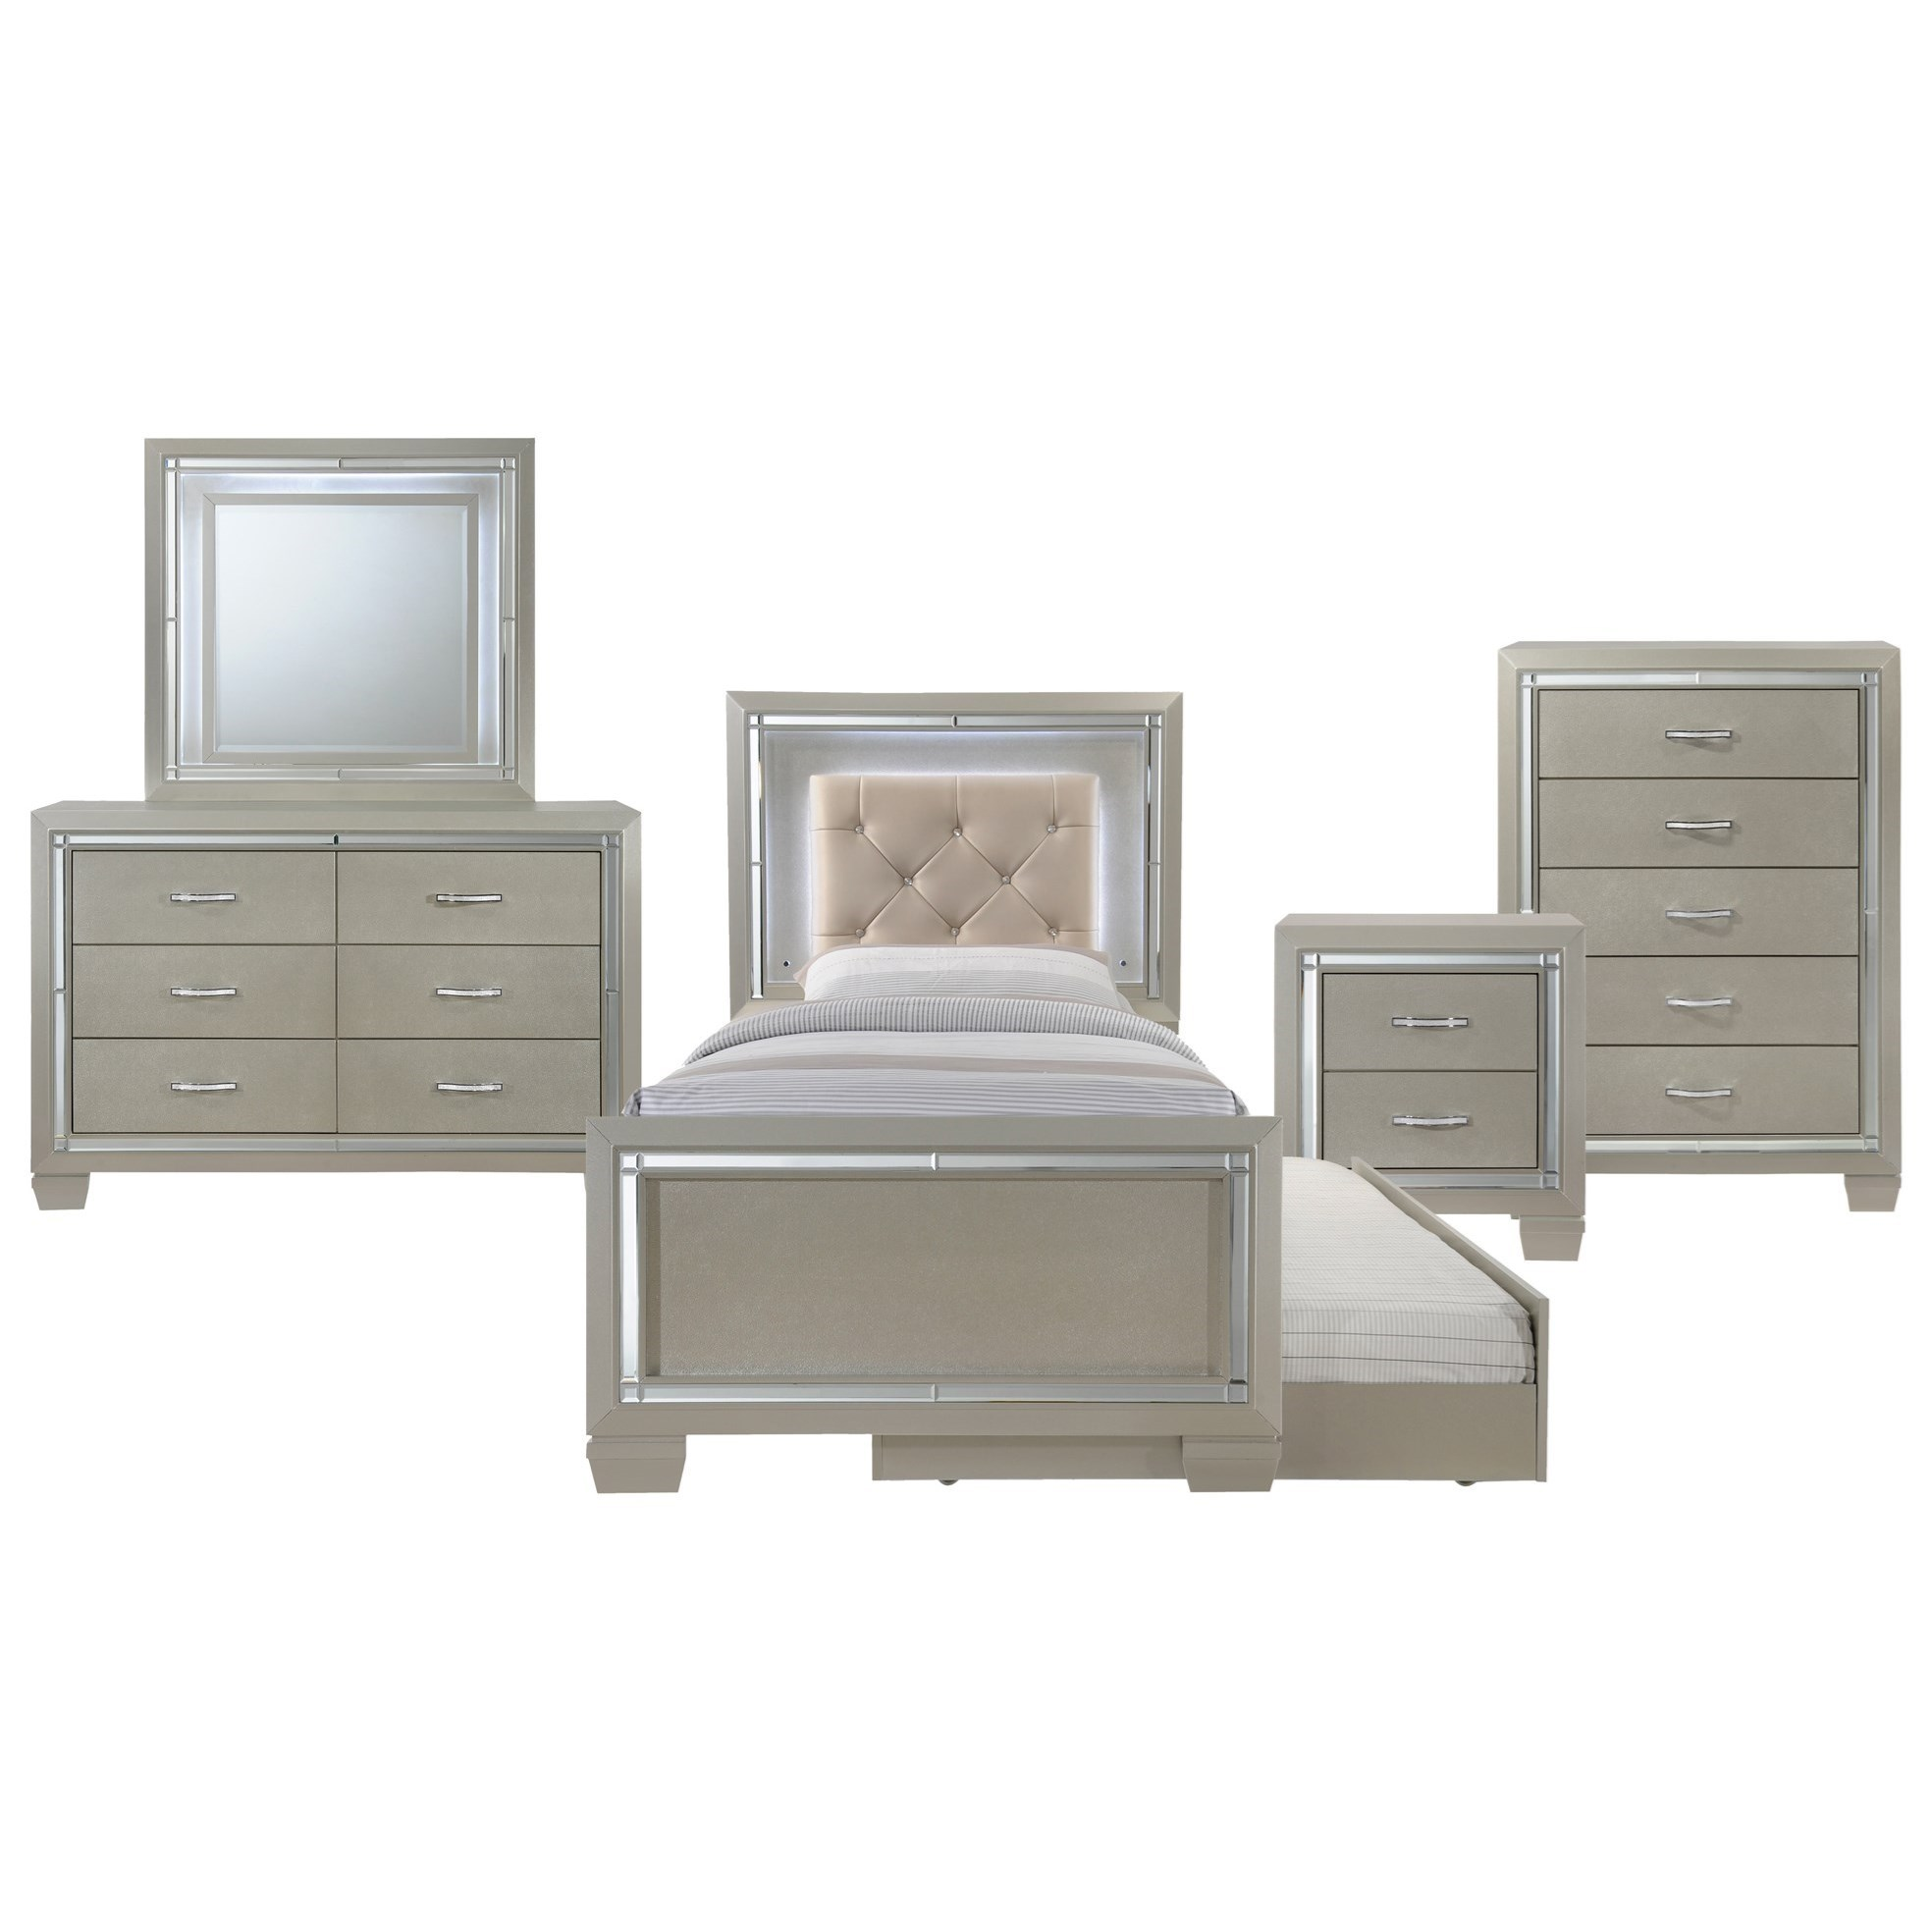 Platinum Twin 5-Piece Trundle Bedroom Group by Elements International at Wilcox Furniture